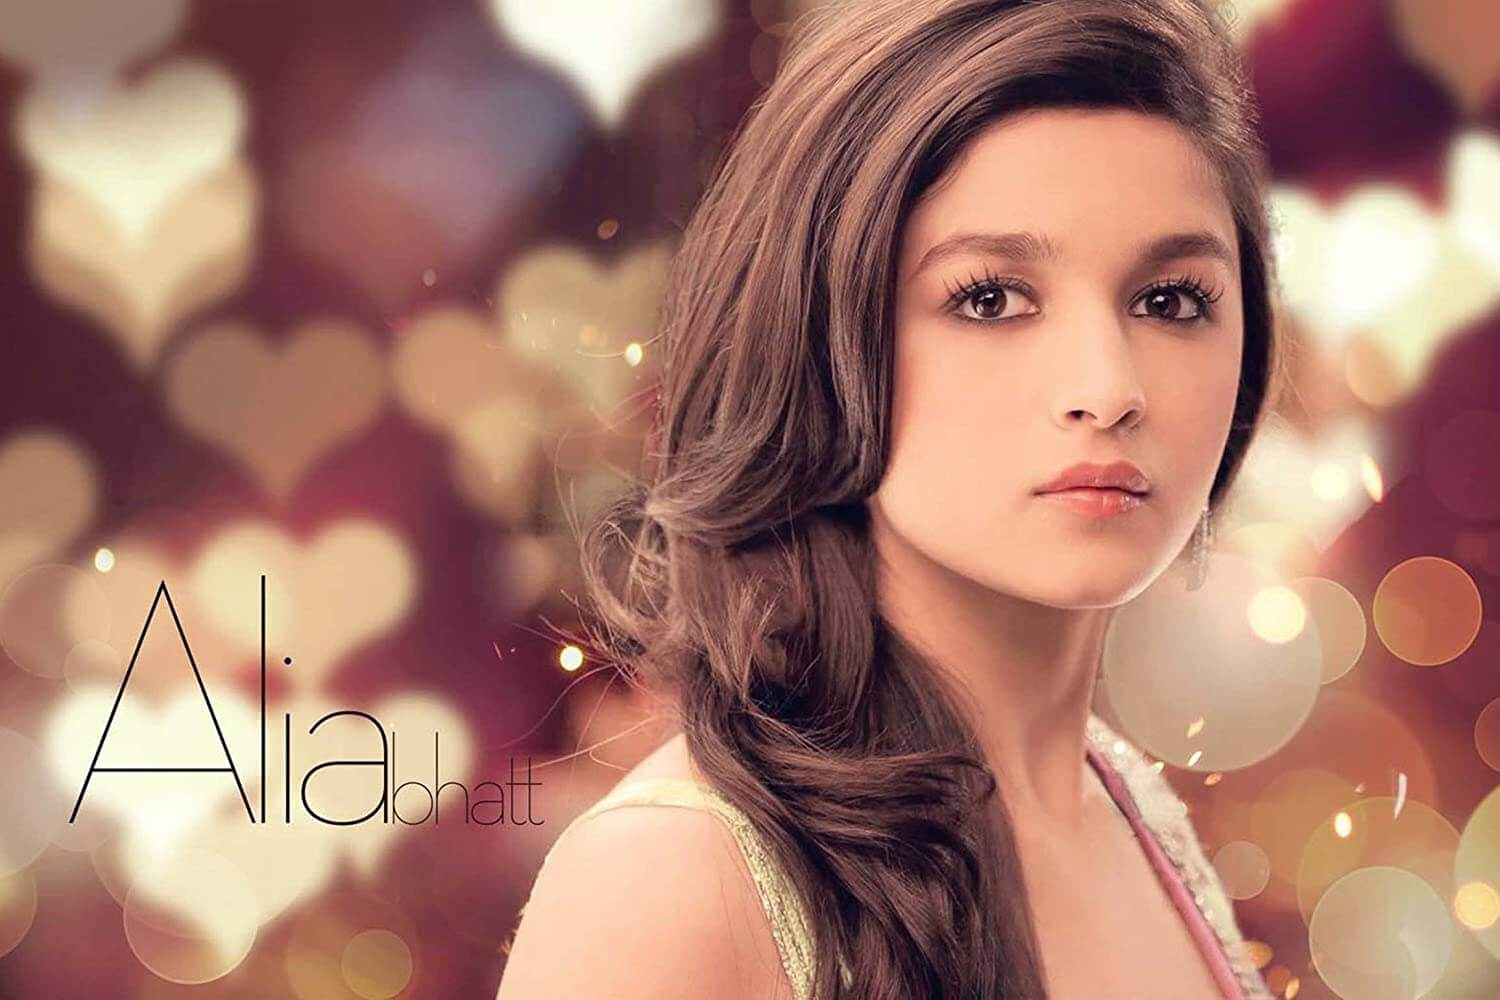 Alia Bhatt marriage, biography, age, photo, net worth, height, boyfriend, images, date of birth, mother, birthday date, sister, in saree, husband, father